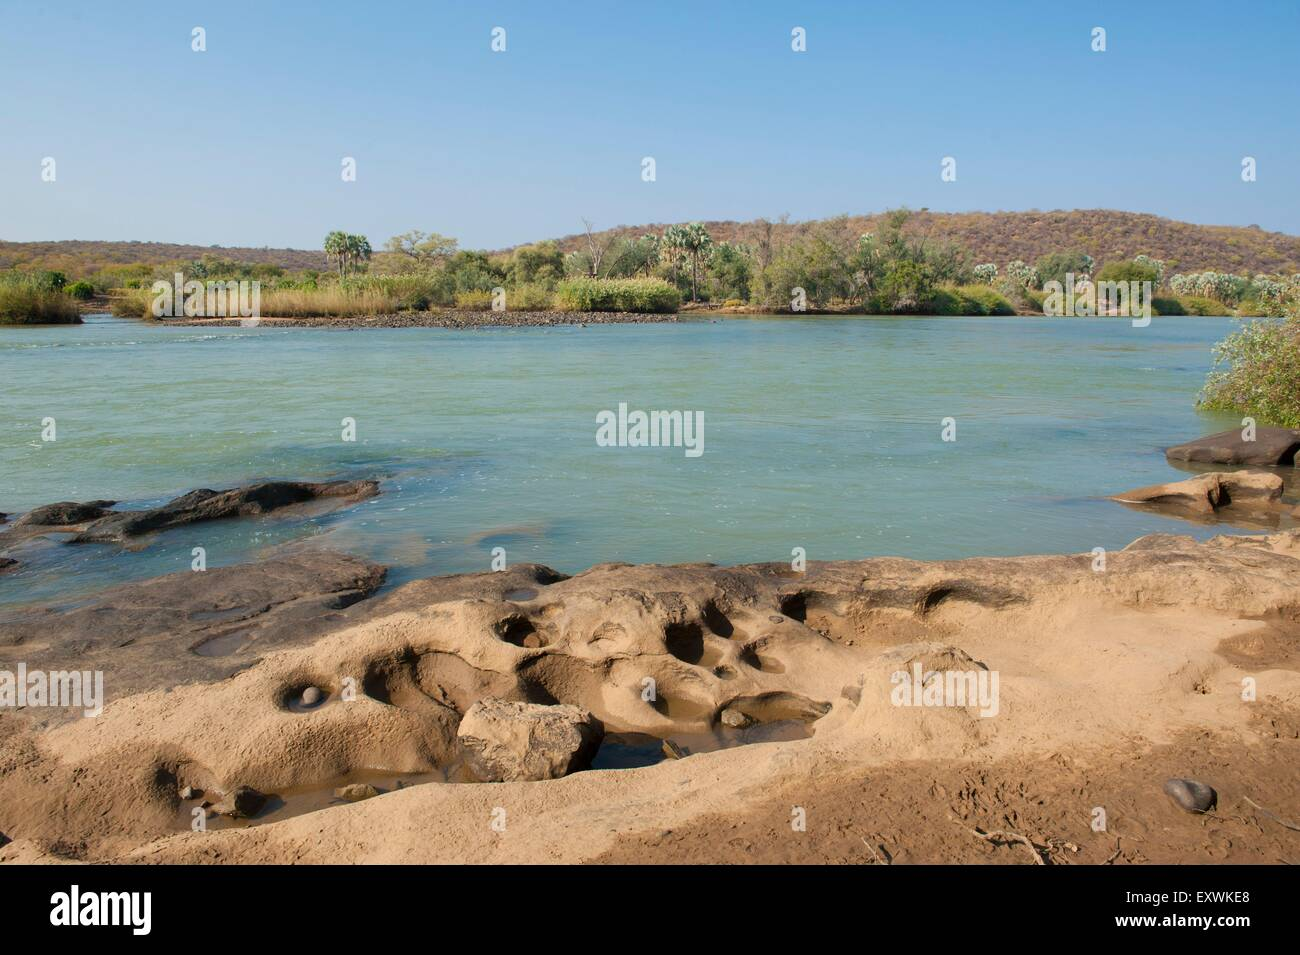 Kunene River in Namibia, boundary river with Angola - Stock Image